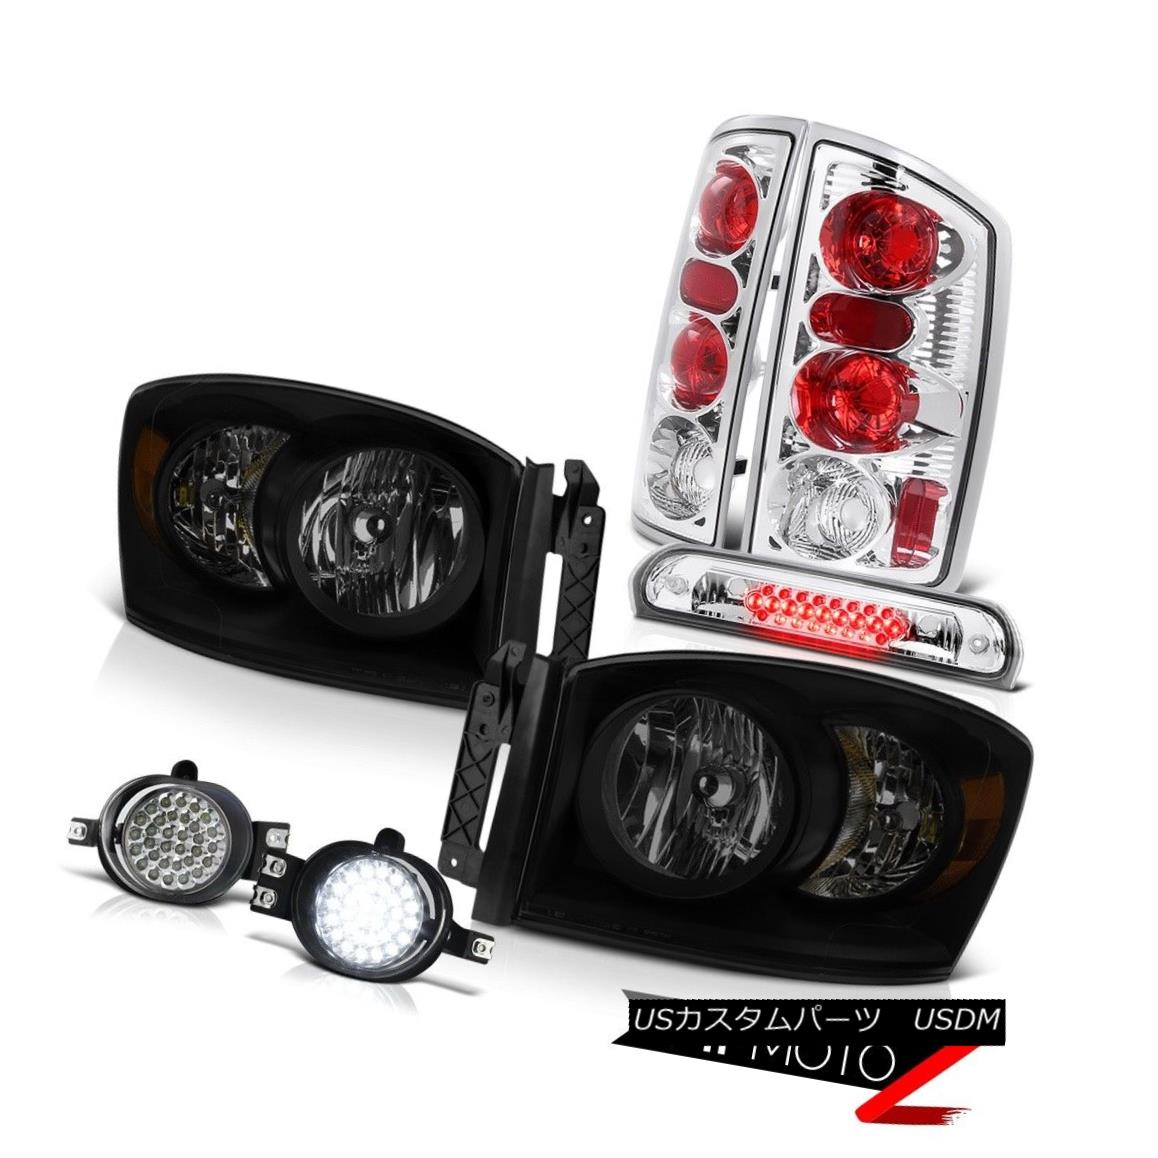 ヘッドライト 2006 Ram 5.7L Sinister Black Headlamps Foglights Roof Cab Lamp Rear Brake Lights 2006 Ram 5.7L Sinister BlackヘッドランプFoglights Roof Cab Lampリアブレーキライト